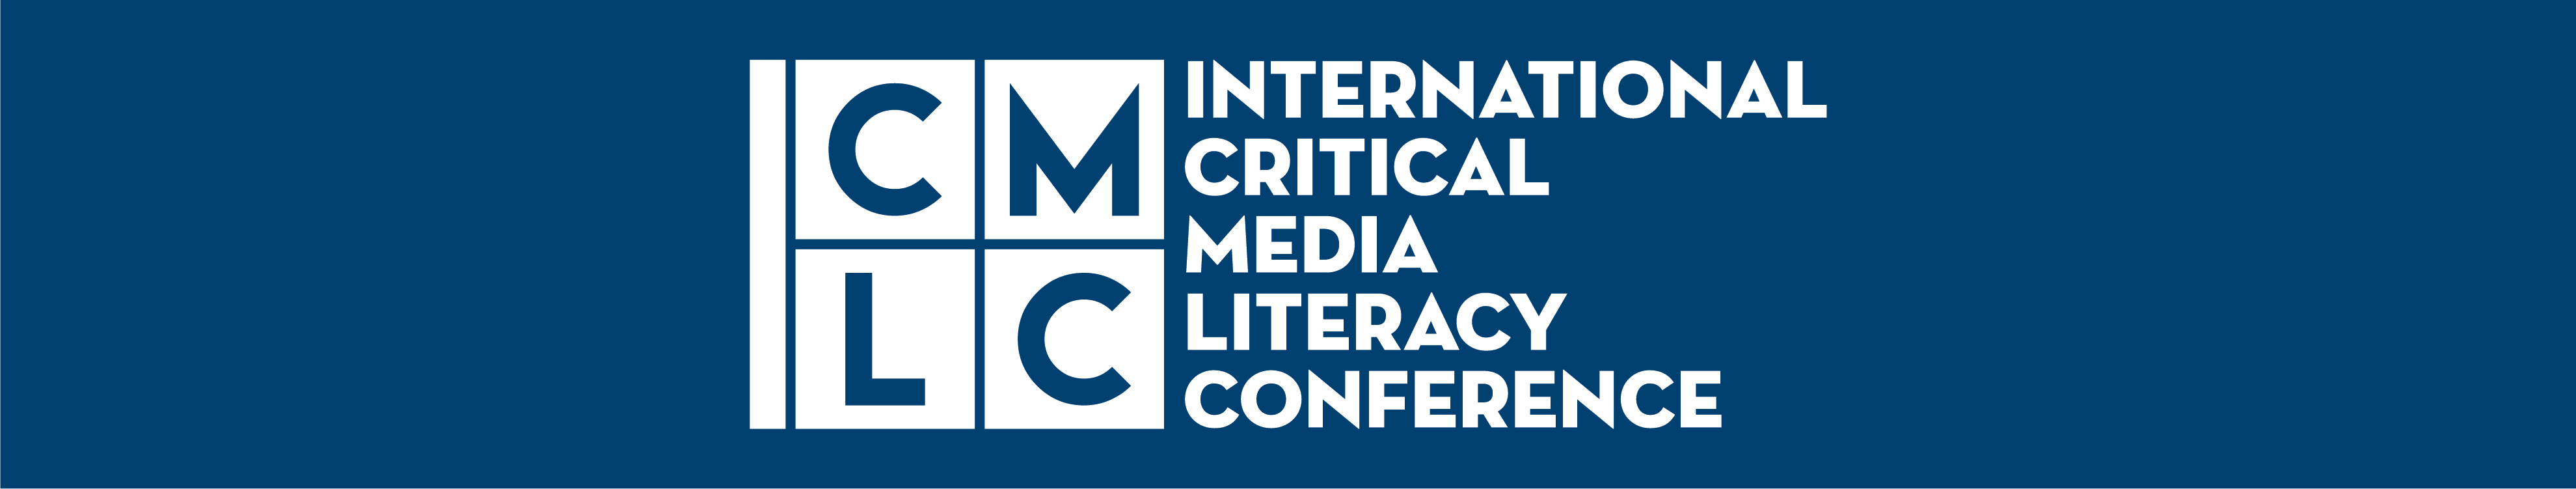 International Critical Media Literacy Conference